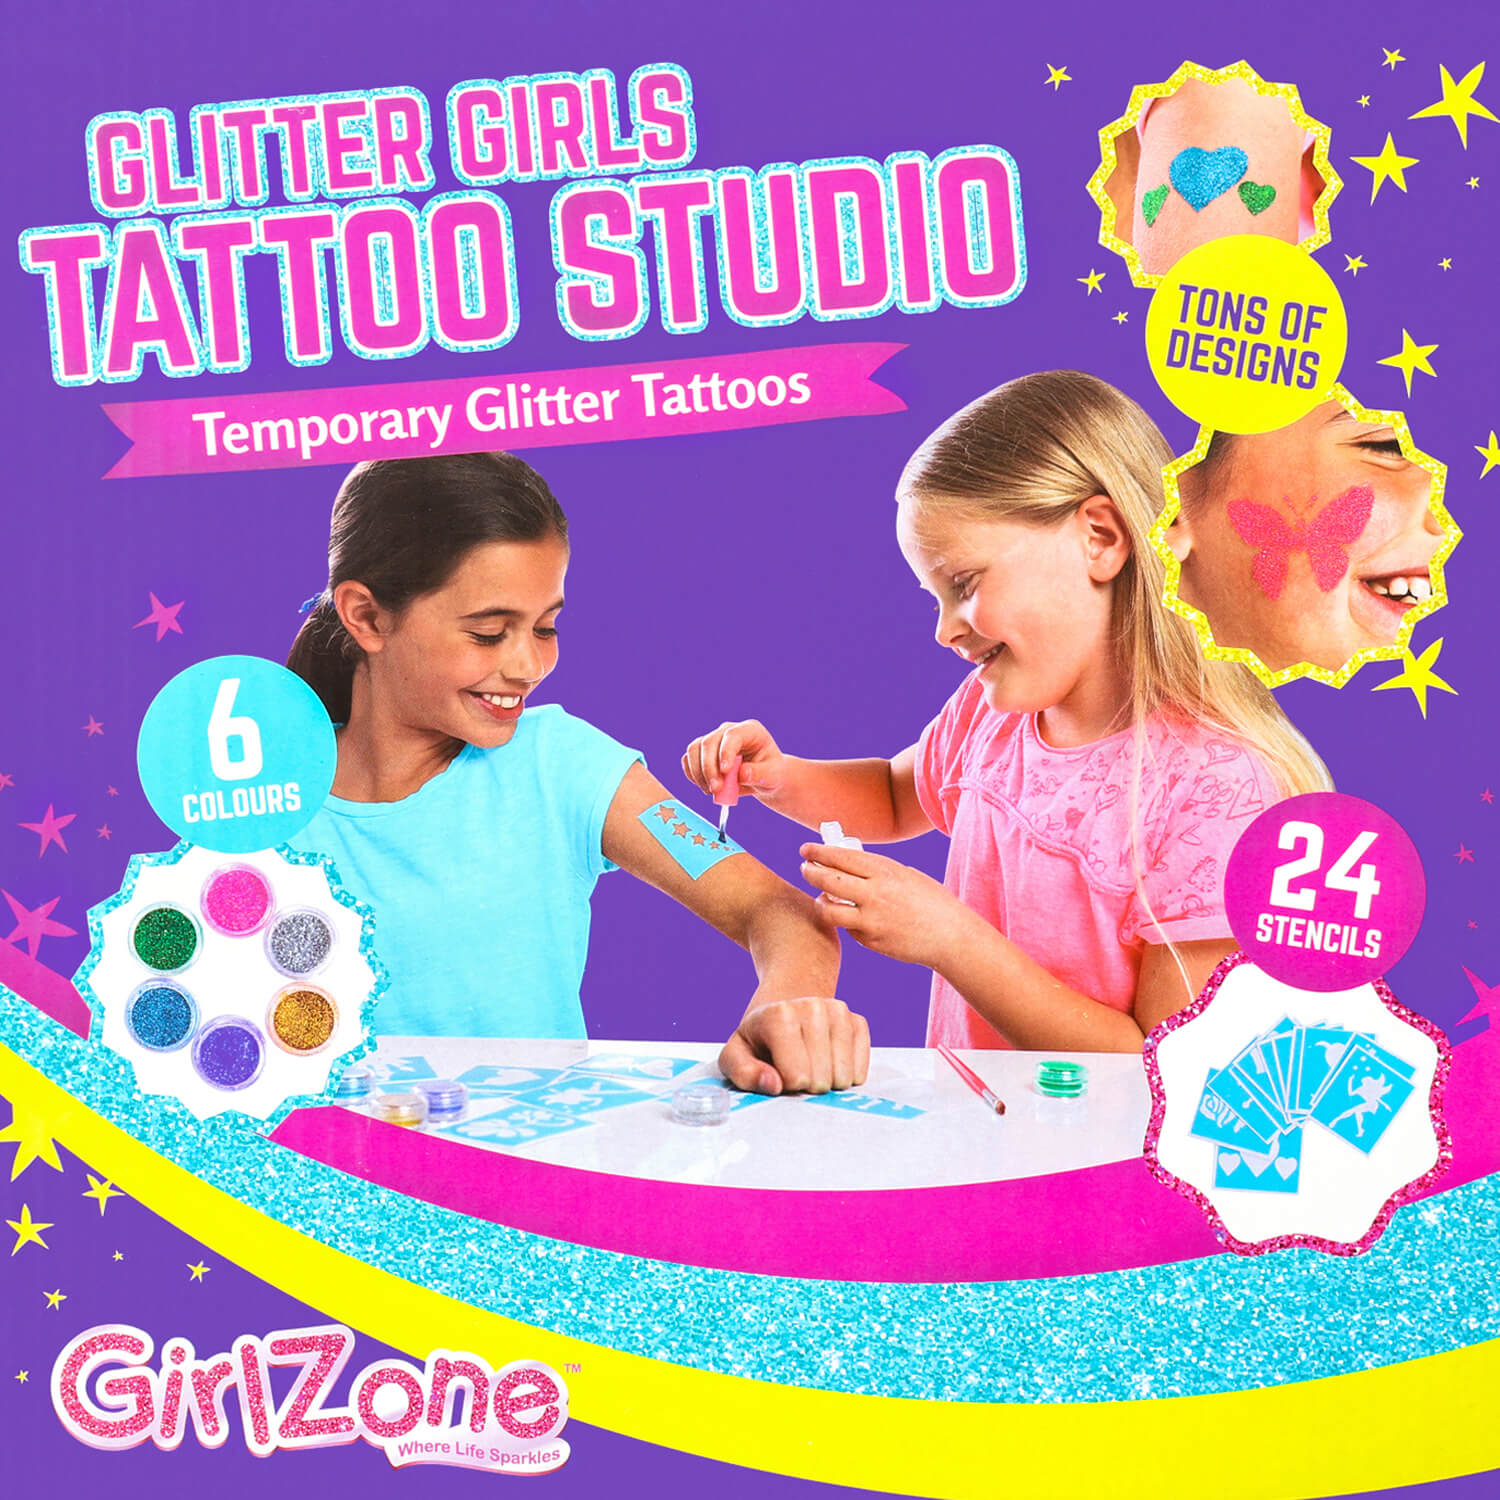 Girls Glitter Tattoo Studio boxfront-2